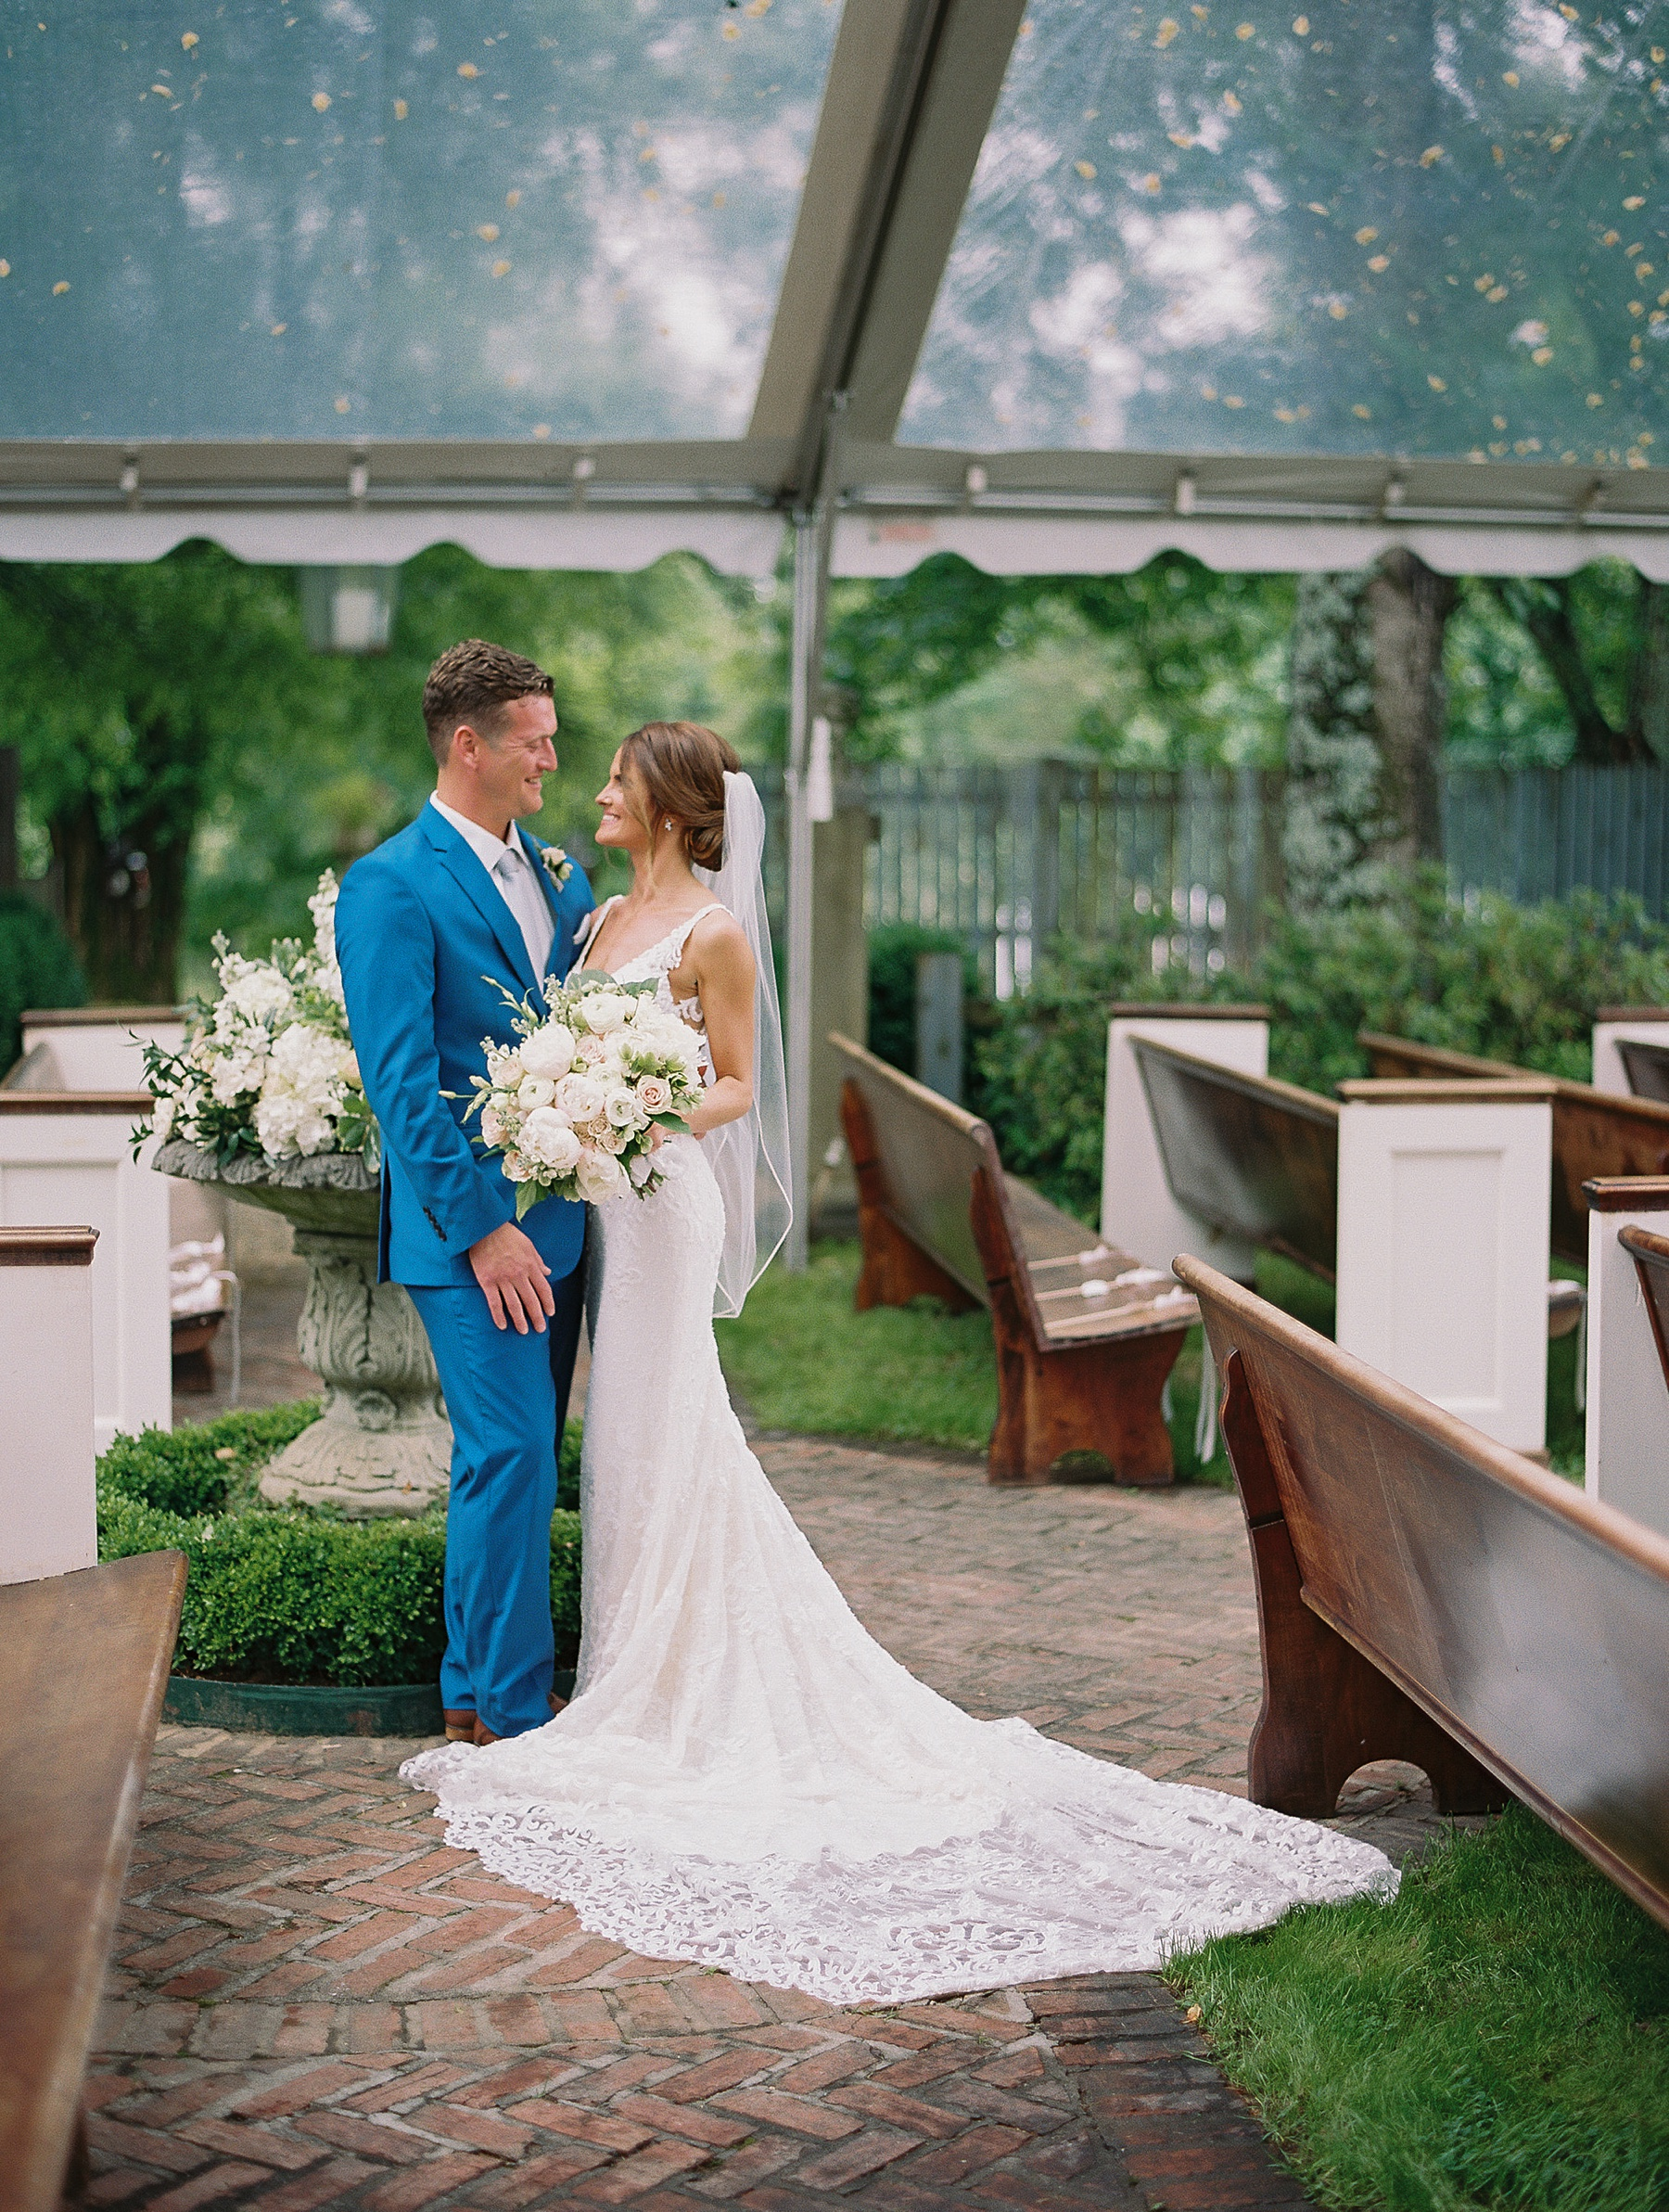 Hedge Farm Weddings Tennessee Wedding Photographer_0608.jpg